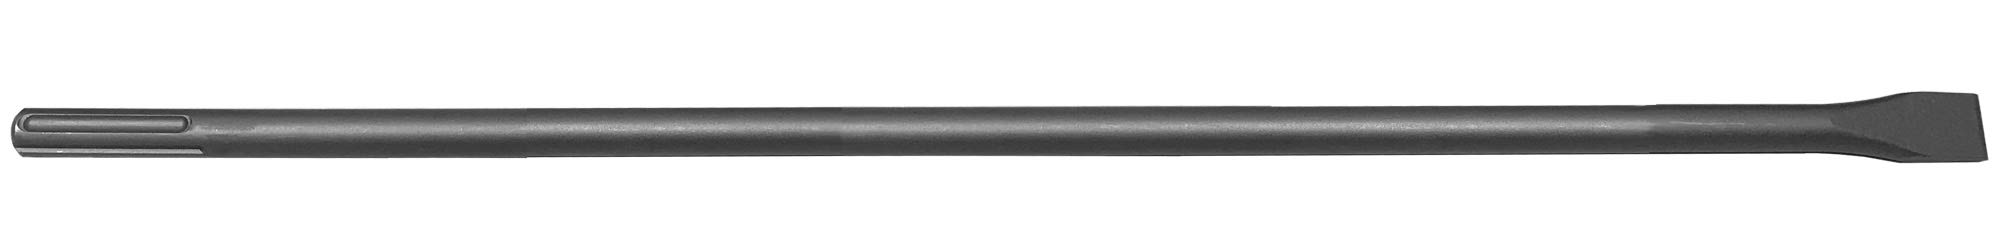 Champion Chisel, 30'' SDS Max Narrow Chisel by Champion Chisel Works